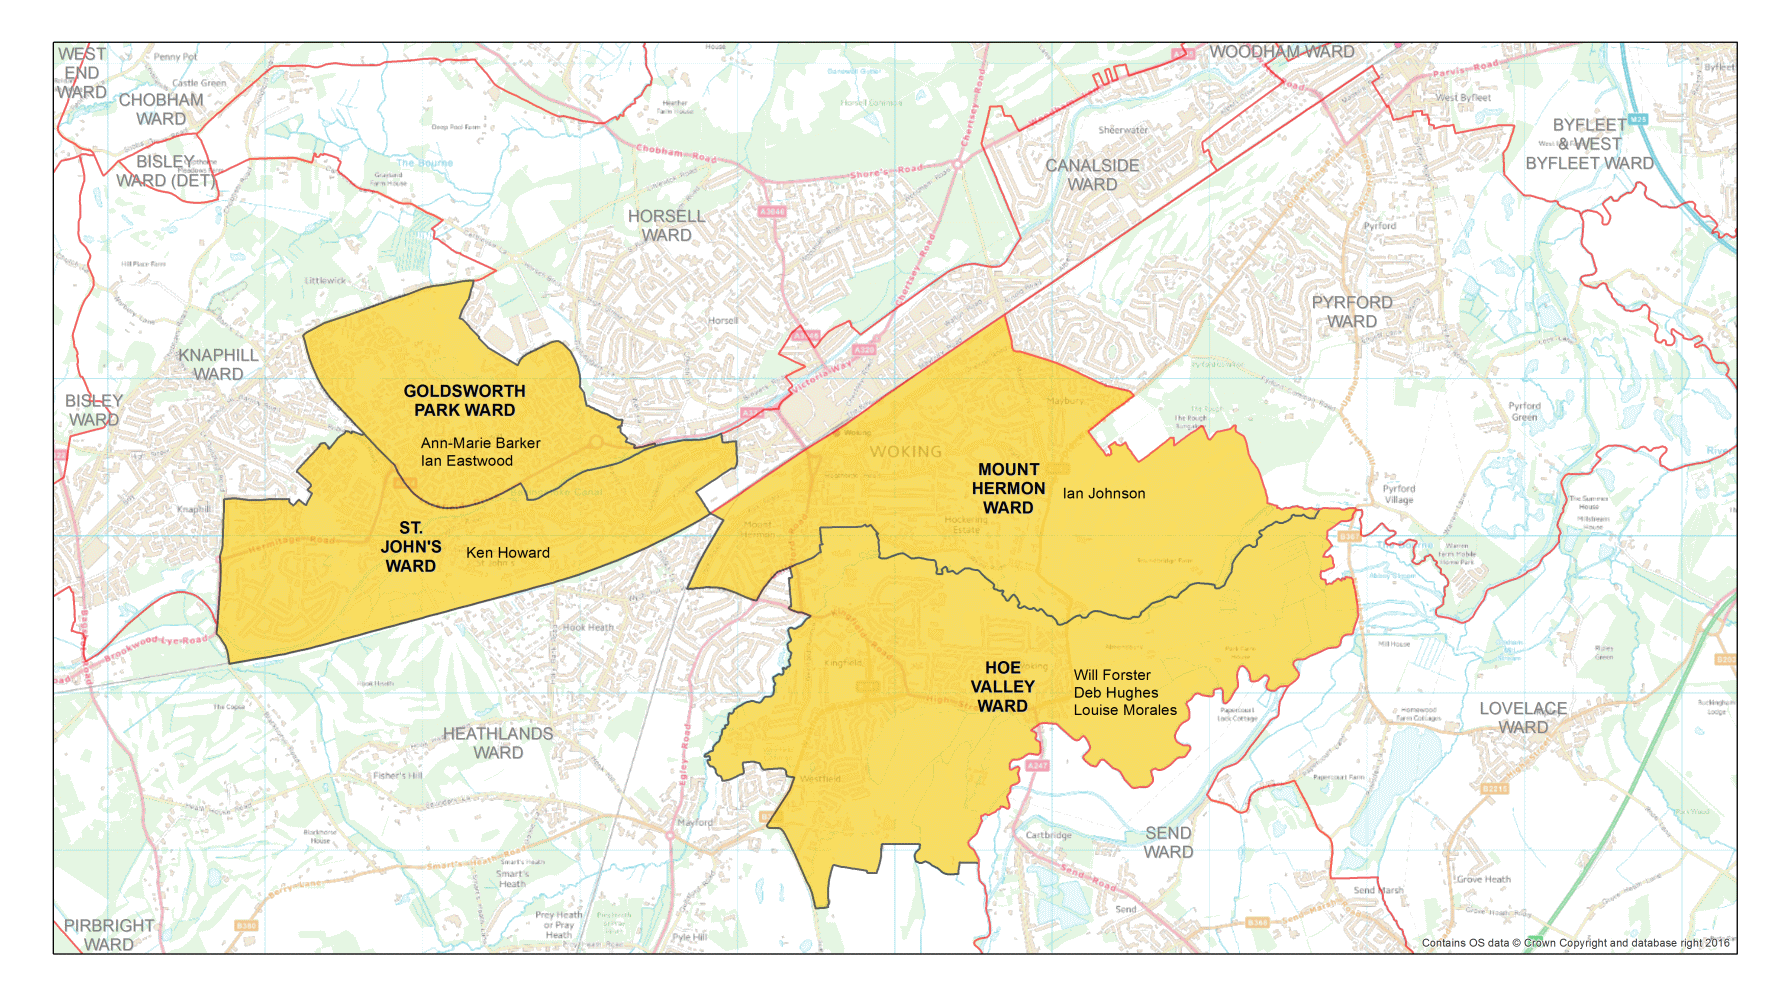 Map of local Ward Boundaries - Woking (Contains OS data © Crown Copyright and database right 2016)